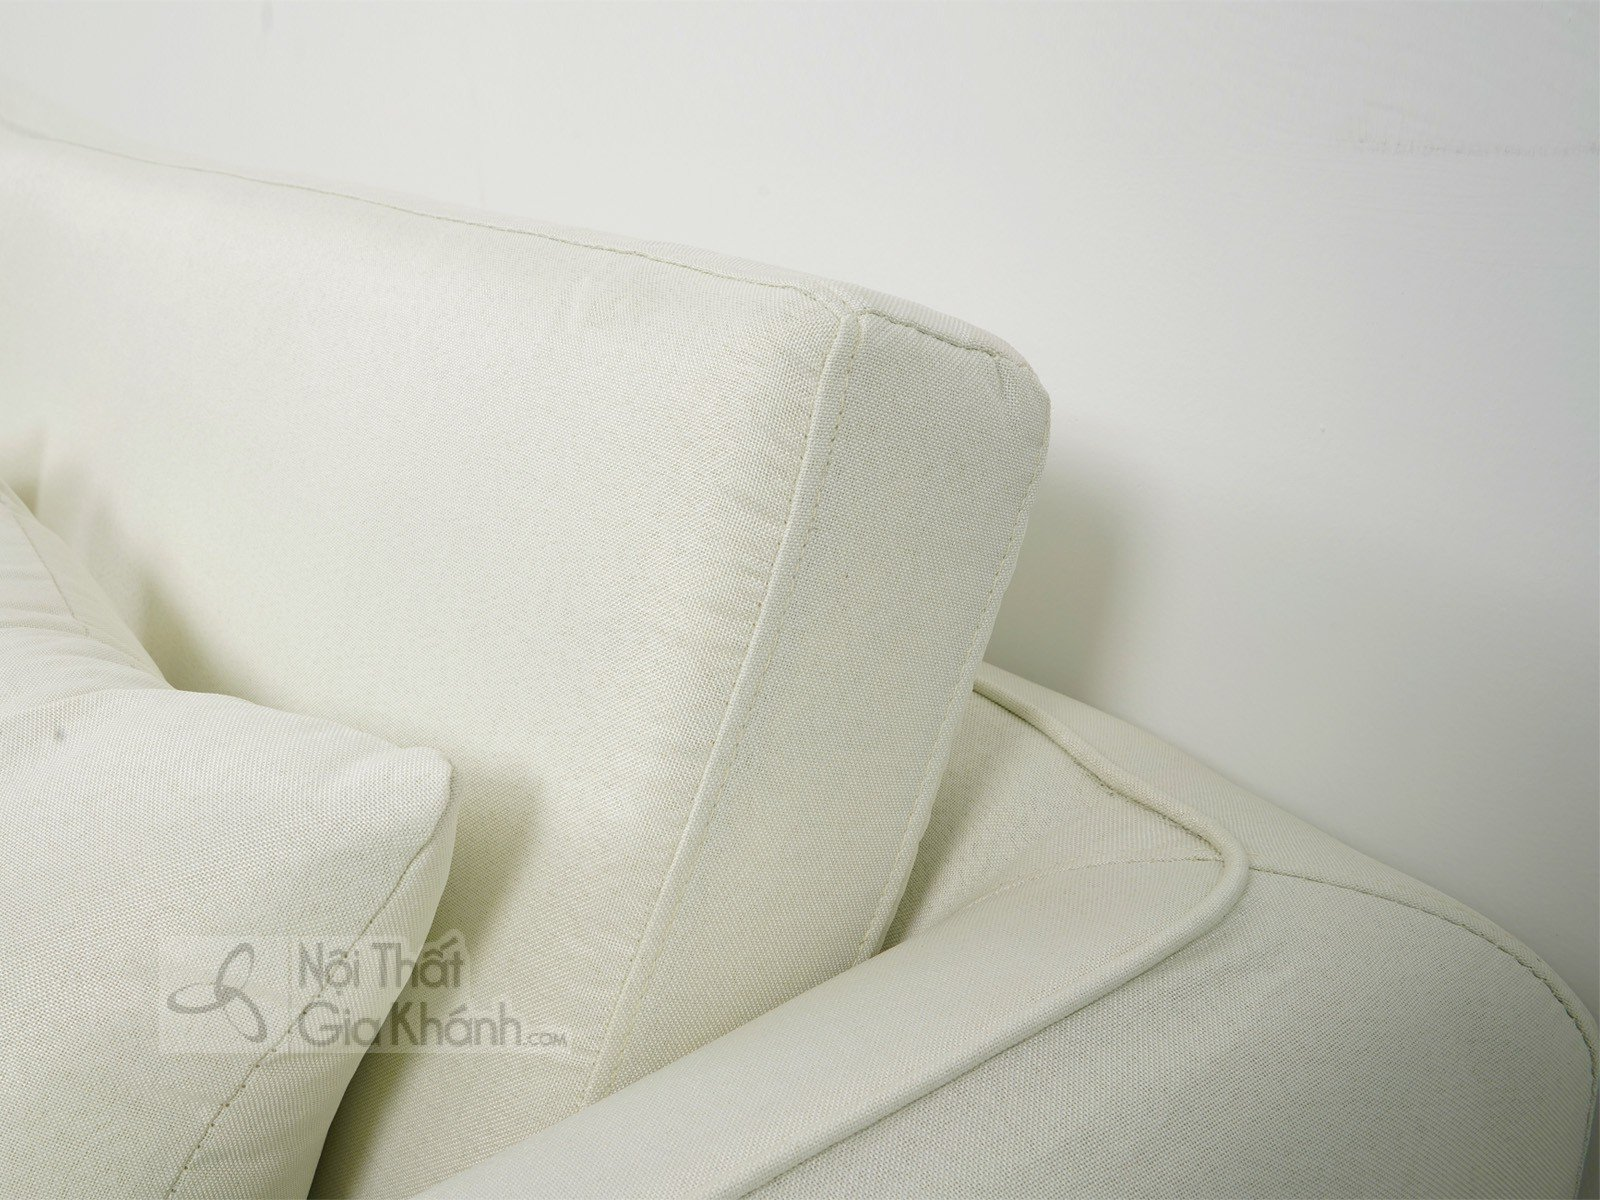 Sofa Ni Hien Dai 8051T Sf 2070X900X850 Don 660X660X450 8